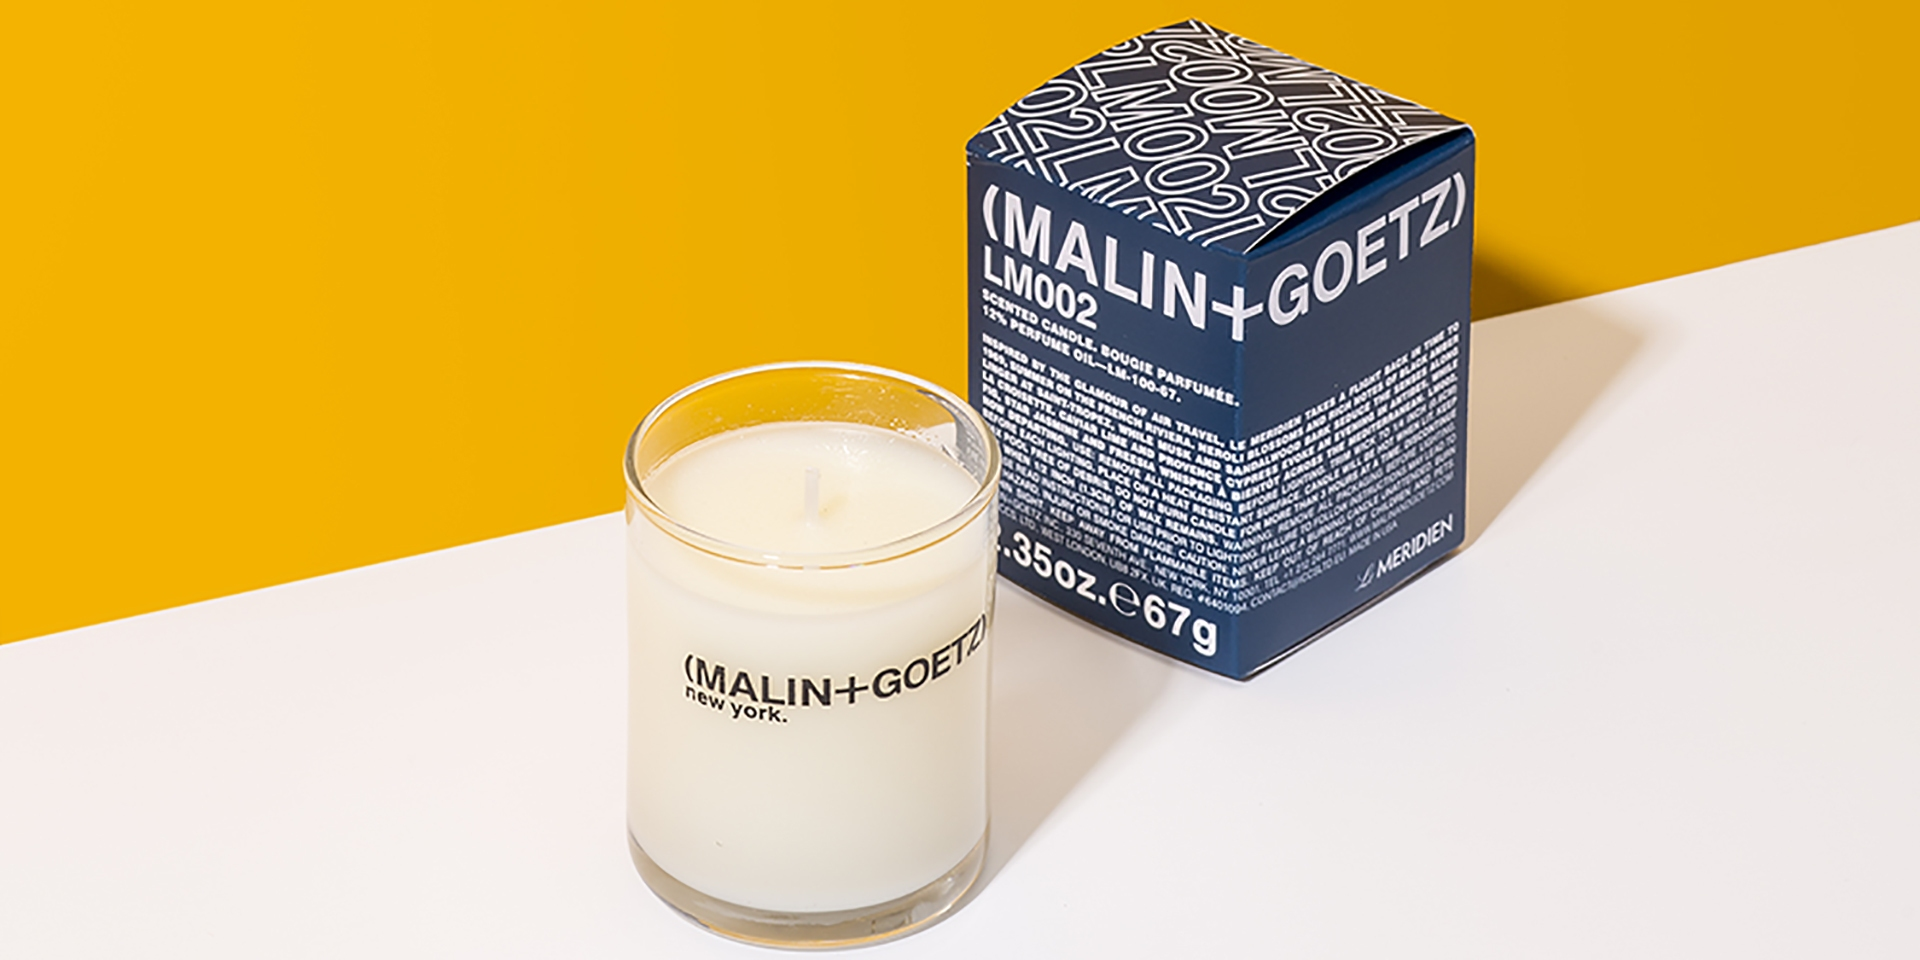 LM_Candle_1Candle-1BoxF-H